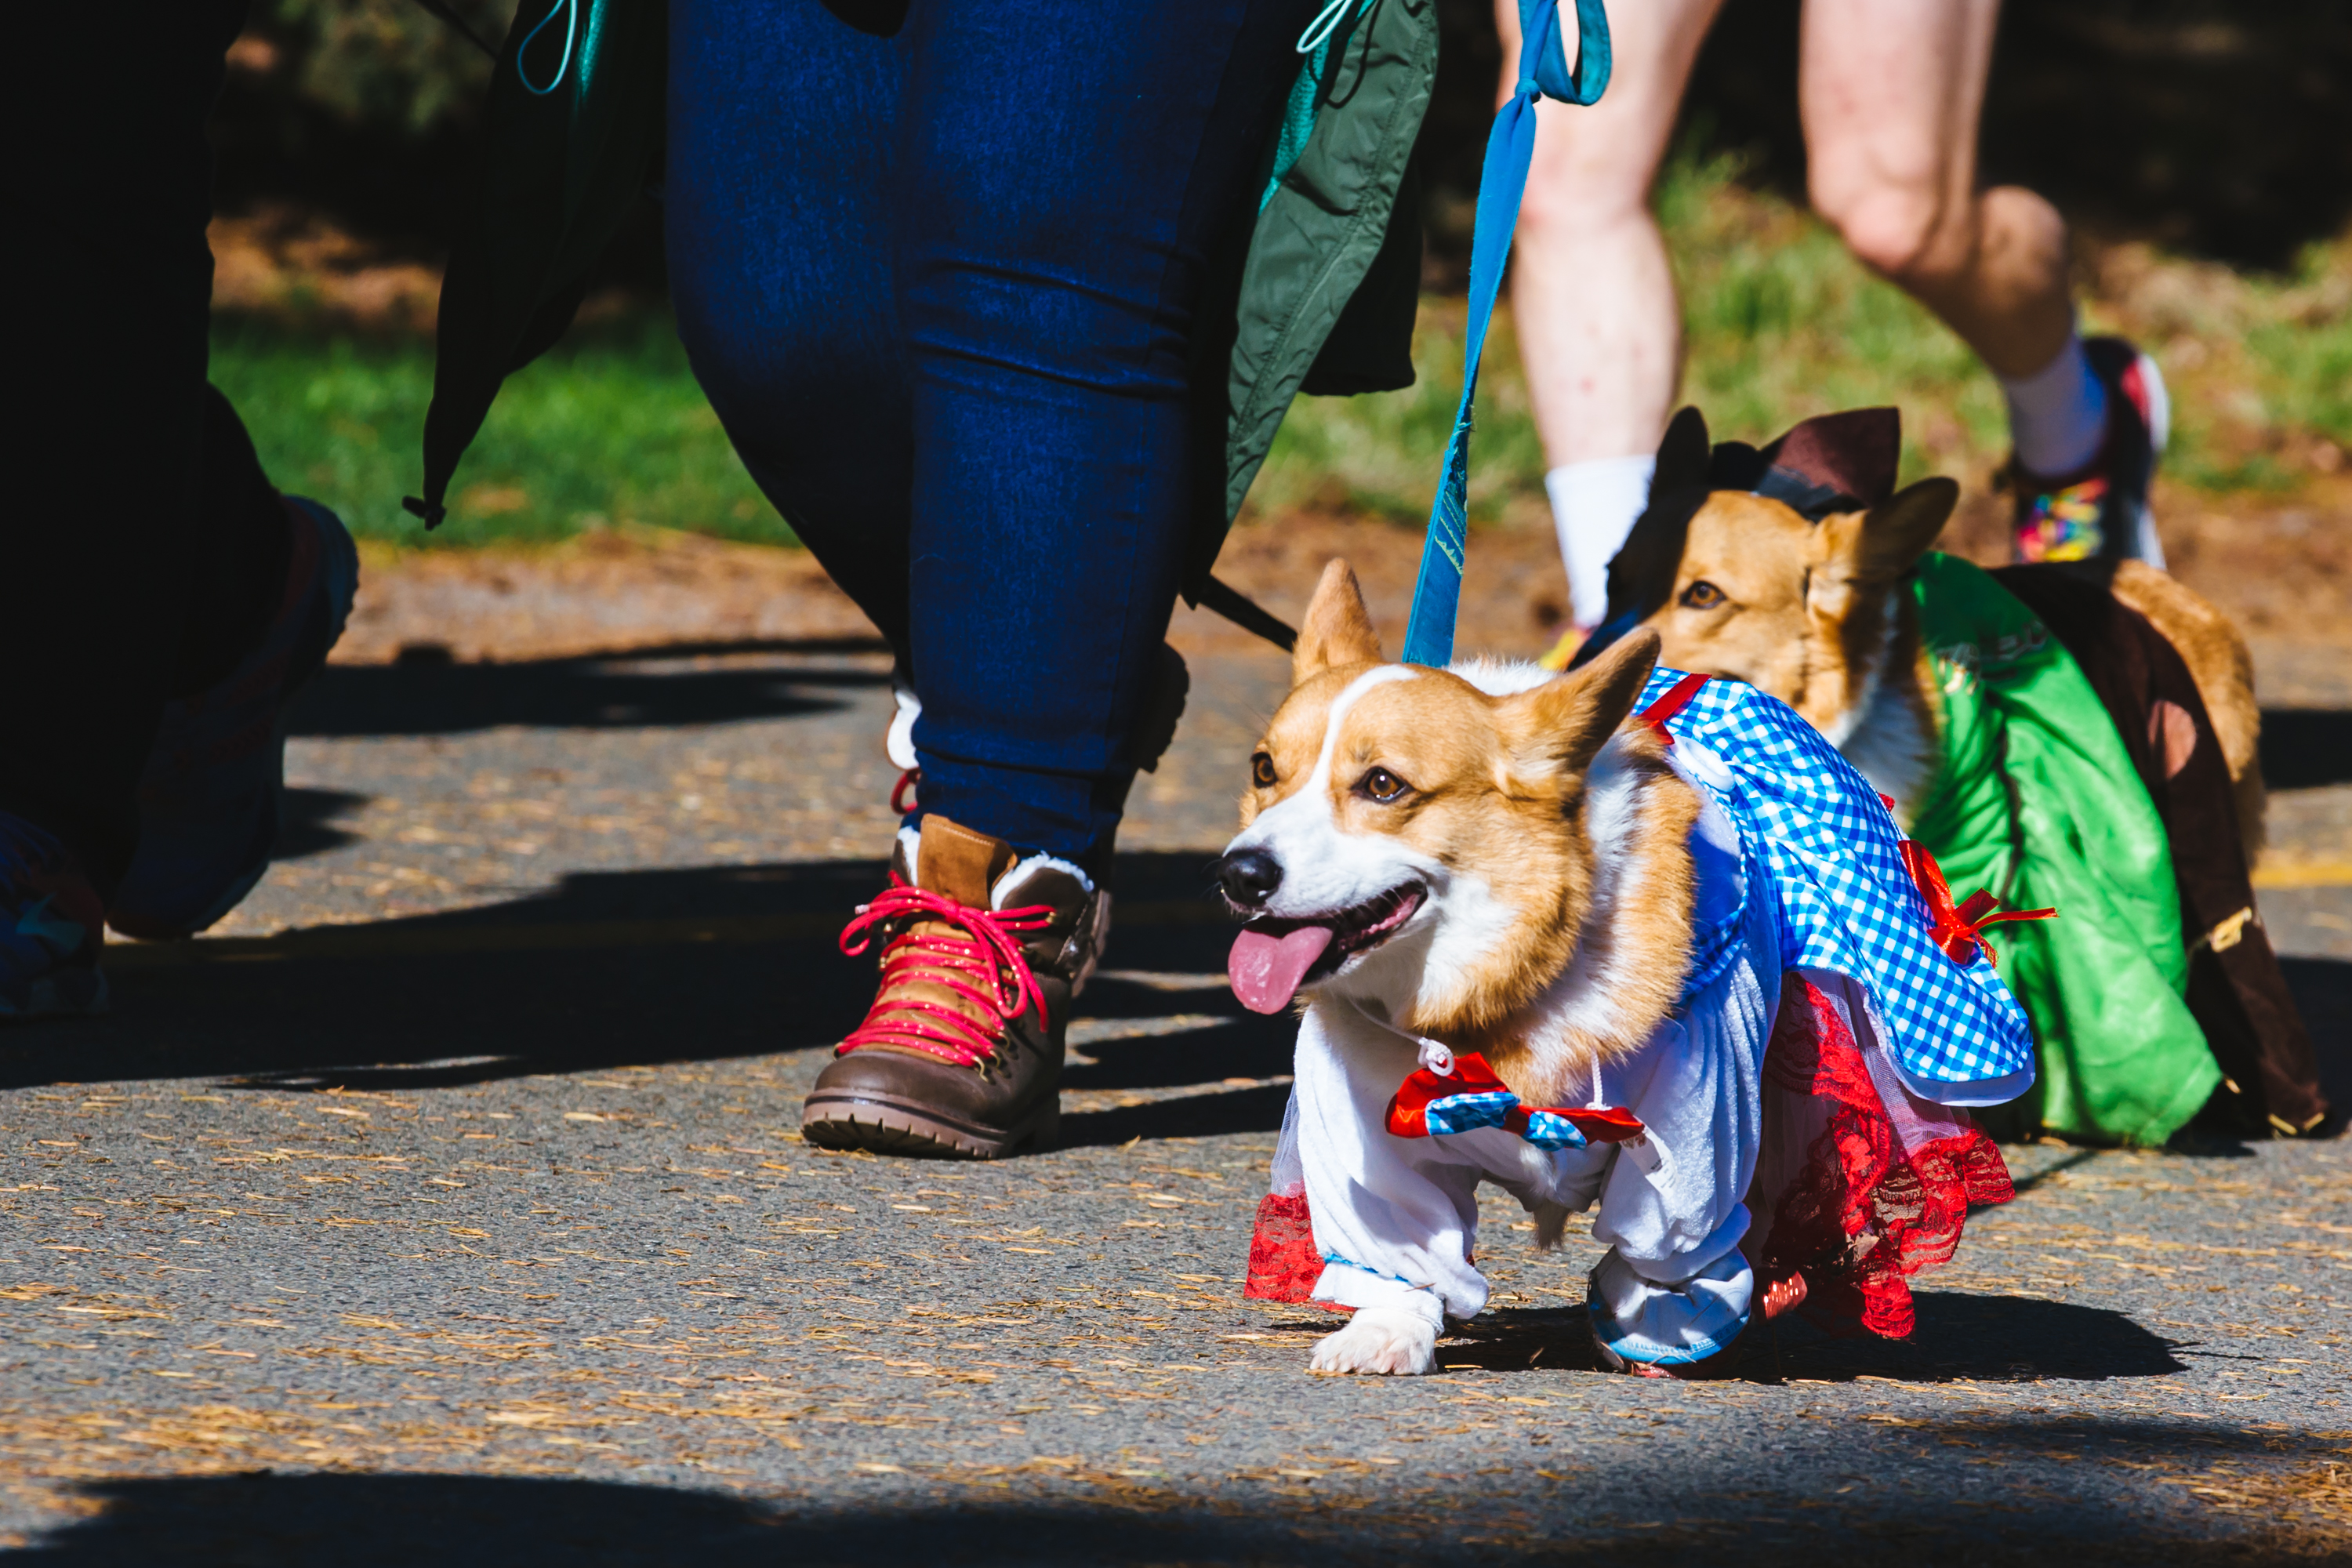 Hundreds of people and their furry corgi friends came out to Green Lake for the Annual Corgi Howl-O-Ween Walk. Corgis were dressed in their best costumes and showed off their outfits as they walked their owners around the lake. (Sunita Martini / Seattle Refined)